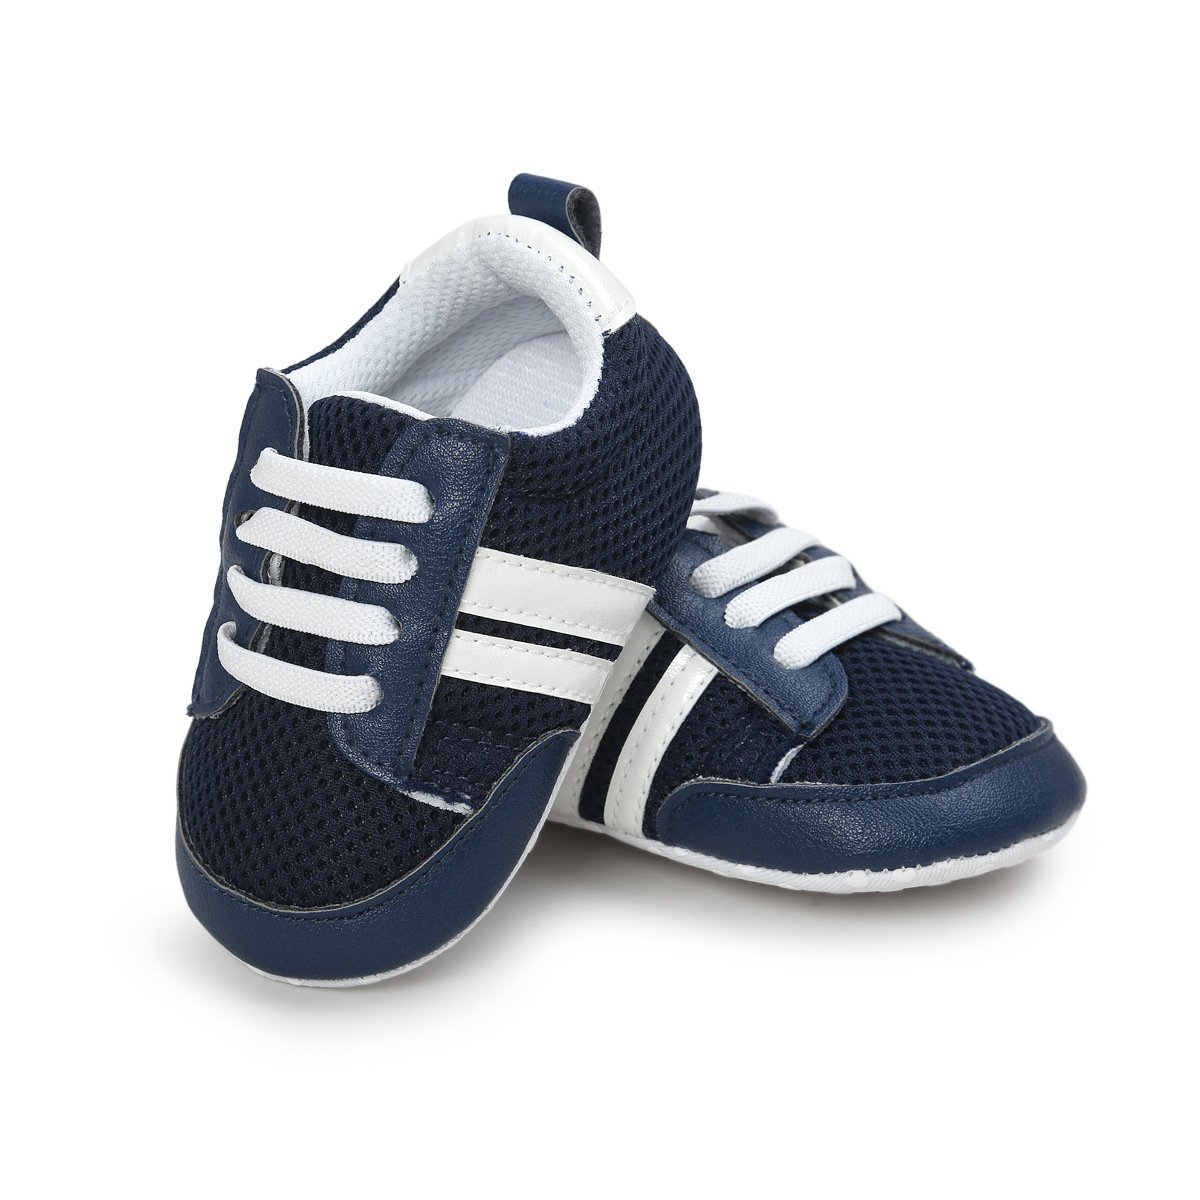 Baby Boys Girls Sneaker Breathable Lightweight Soft Sole Anti-Slip Infant Crib Shoes Fisrt Walkers